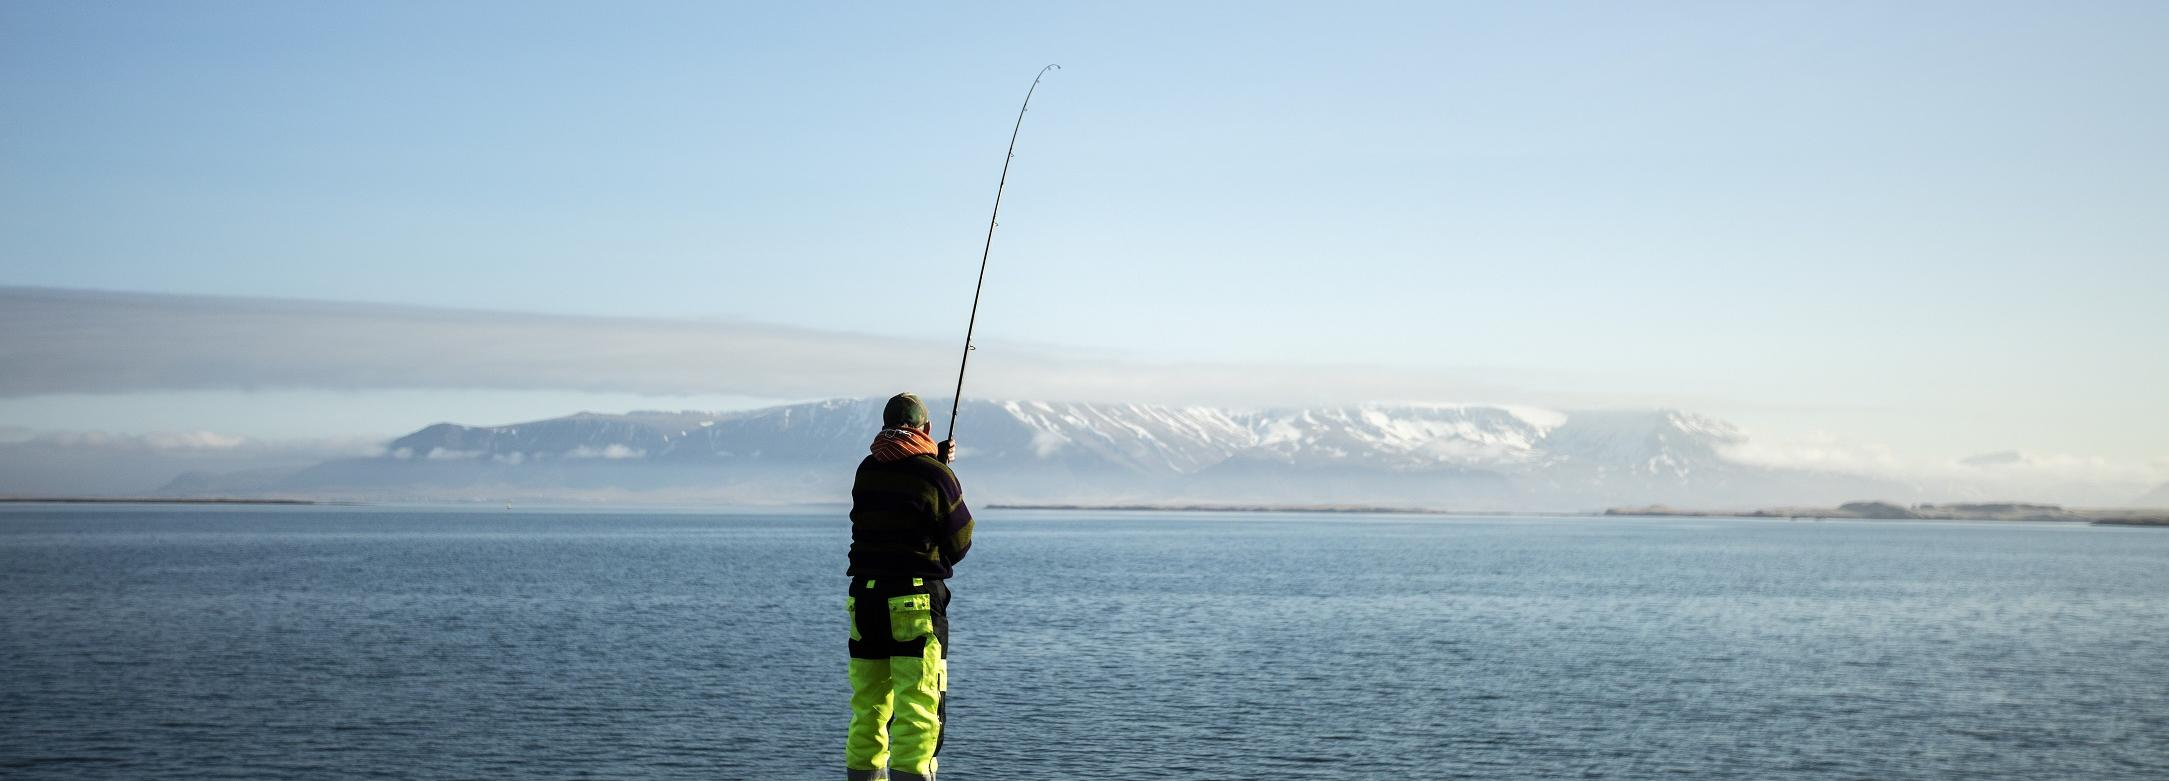 Fishing for icelandic cod © James Morgan for MSC